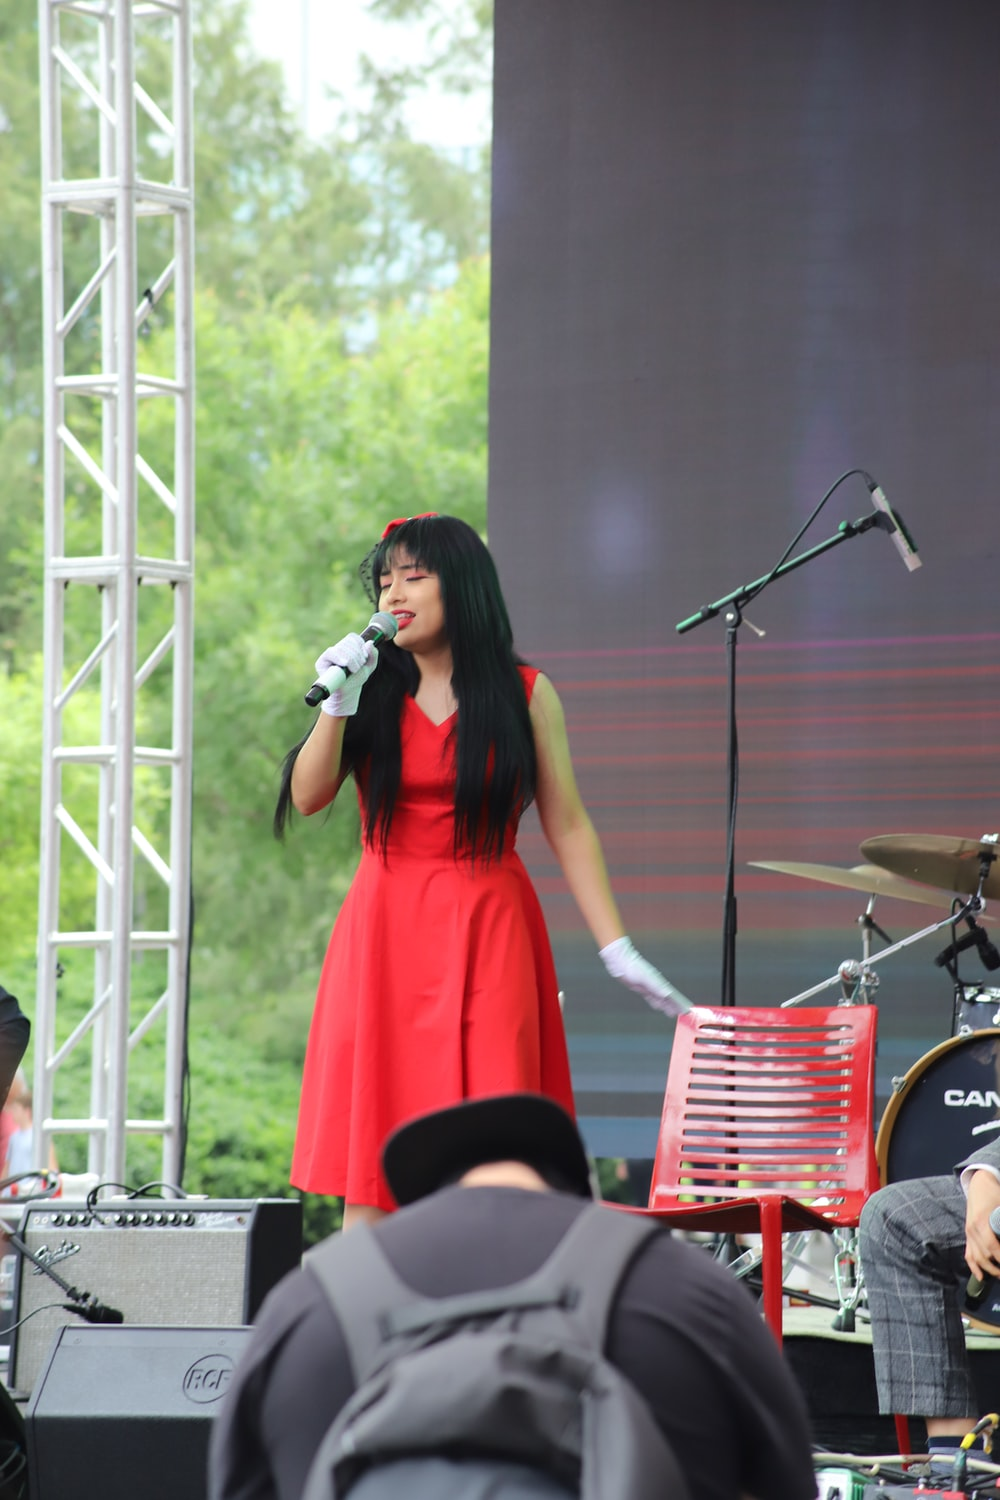 photography of woman singing near stage during daytime